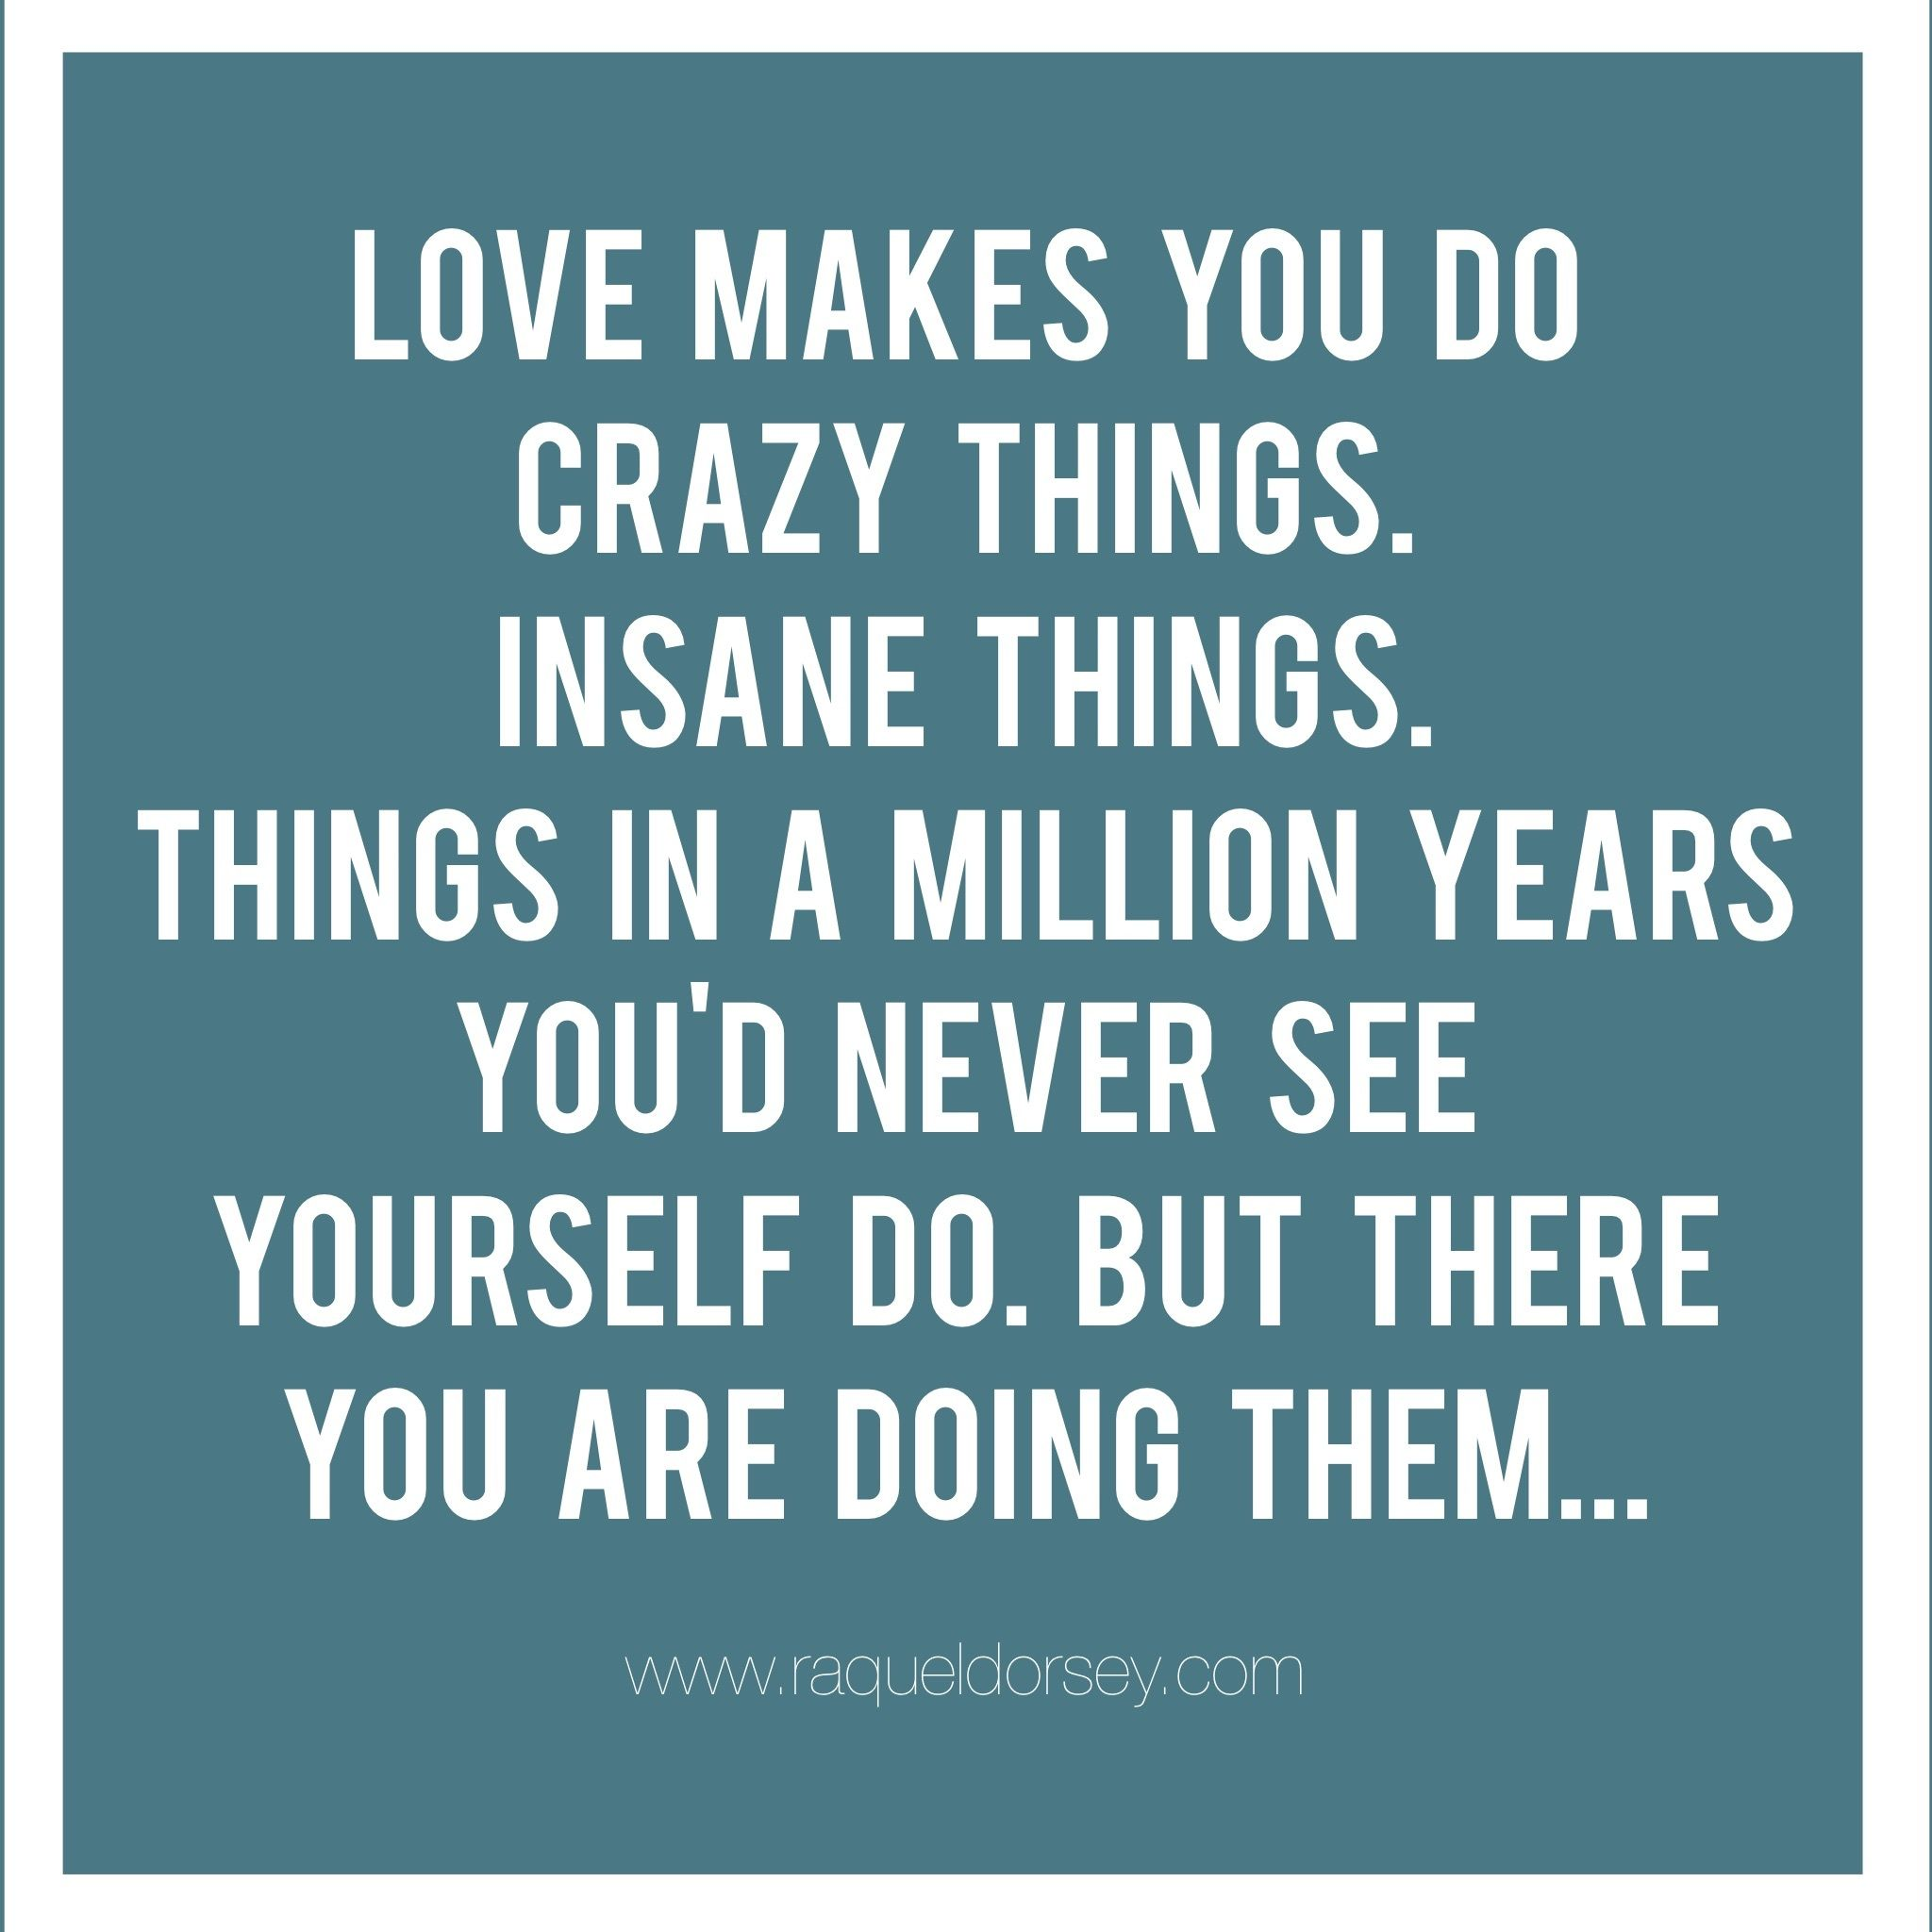 Love Makes You Do Crazy Things Insane Things Things In A Million